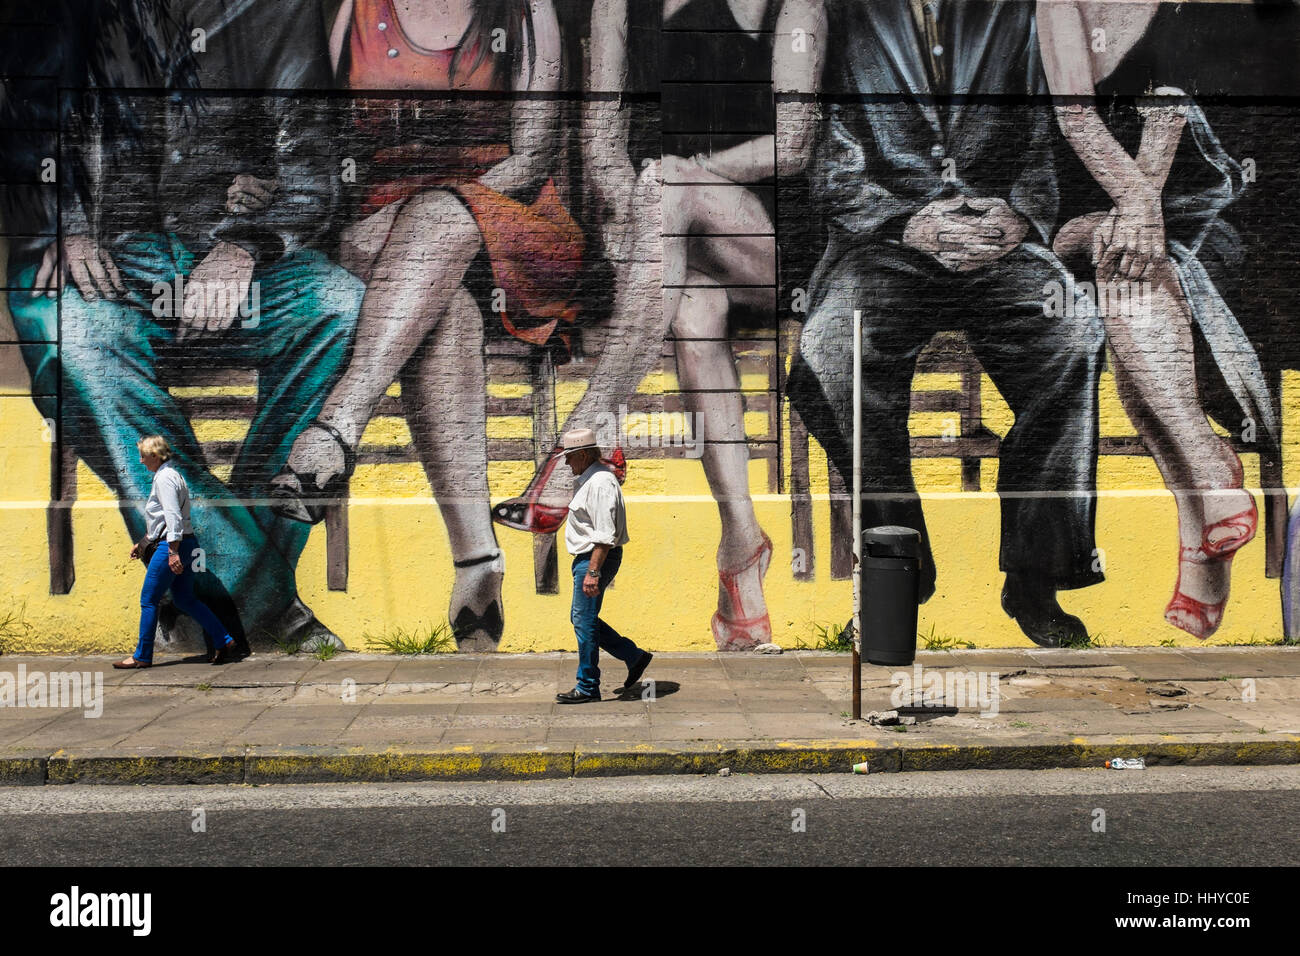 Walking past a city mural depicting sitting couples, Buenos Aires - Stock Image